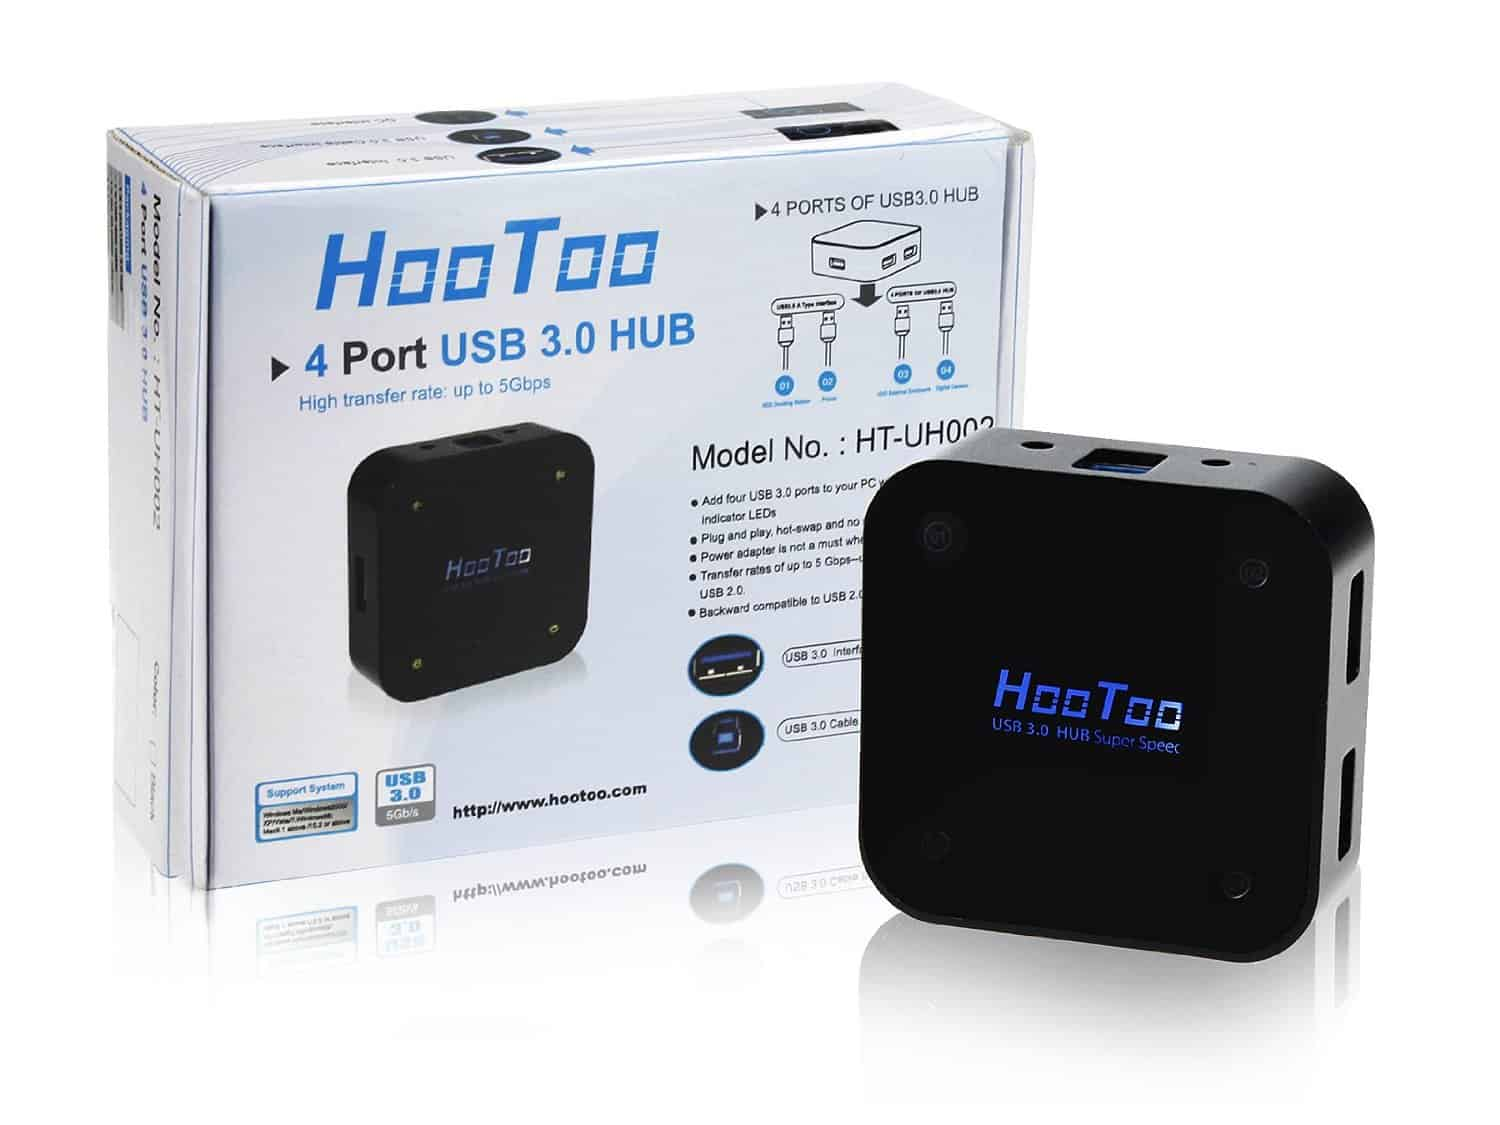 HooToo 4 Port USB 3 Hub Review